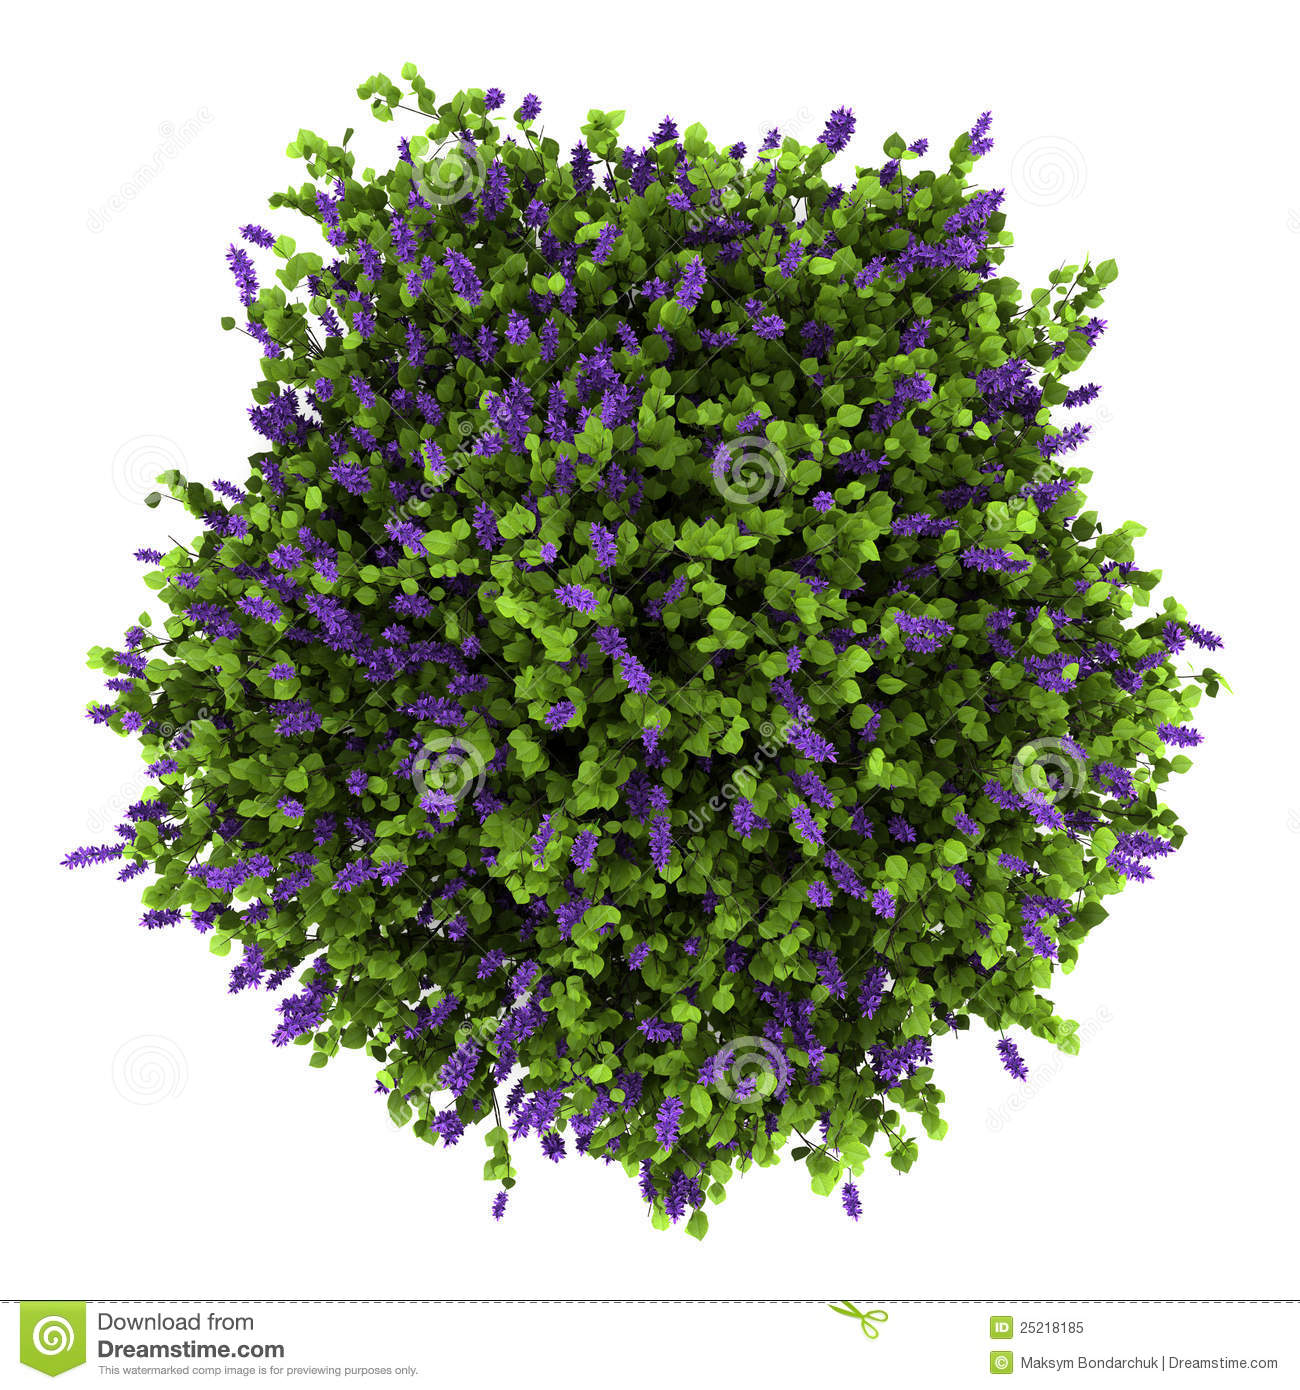 Flower Shrubs Png Flower Bush Png Top View of